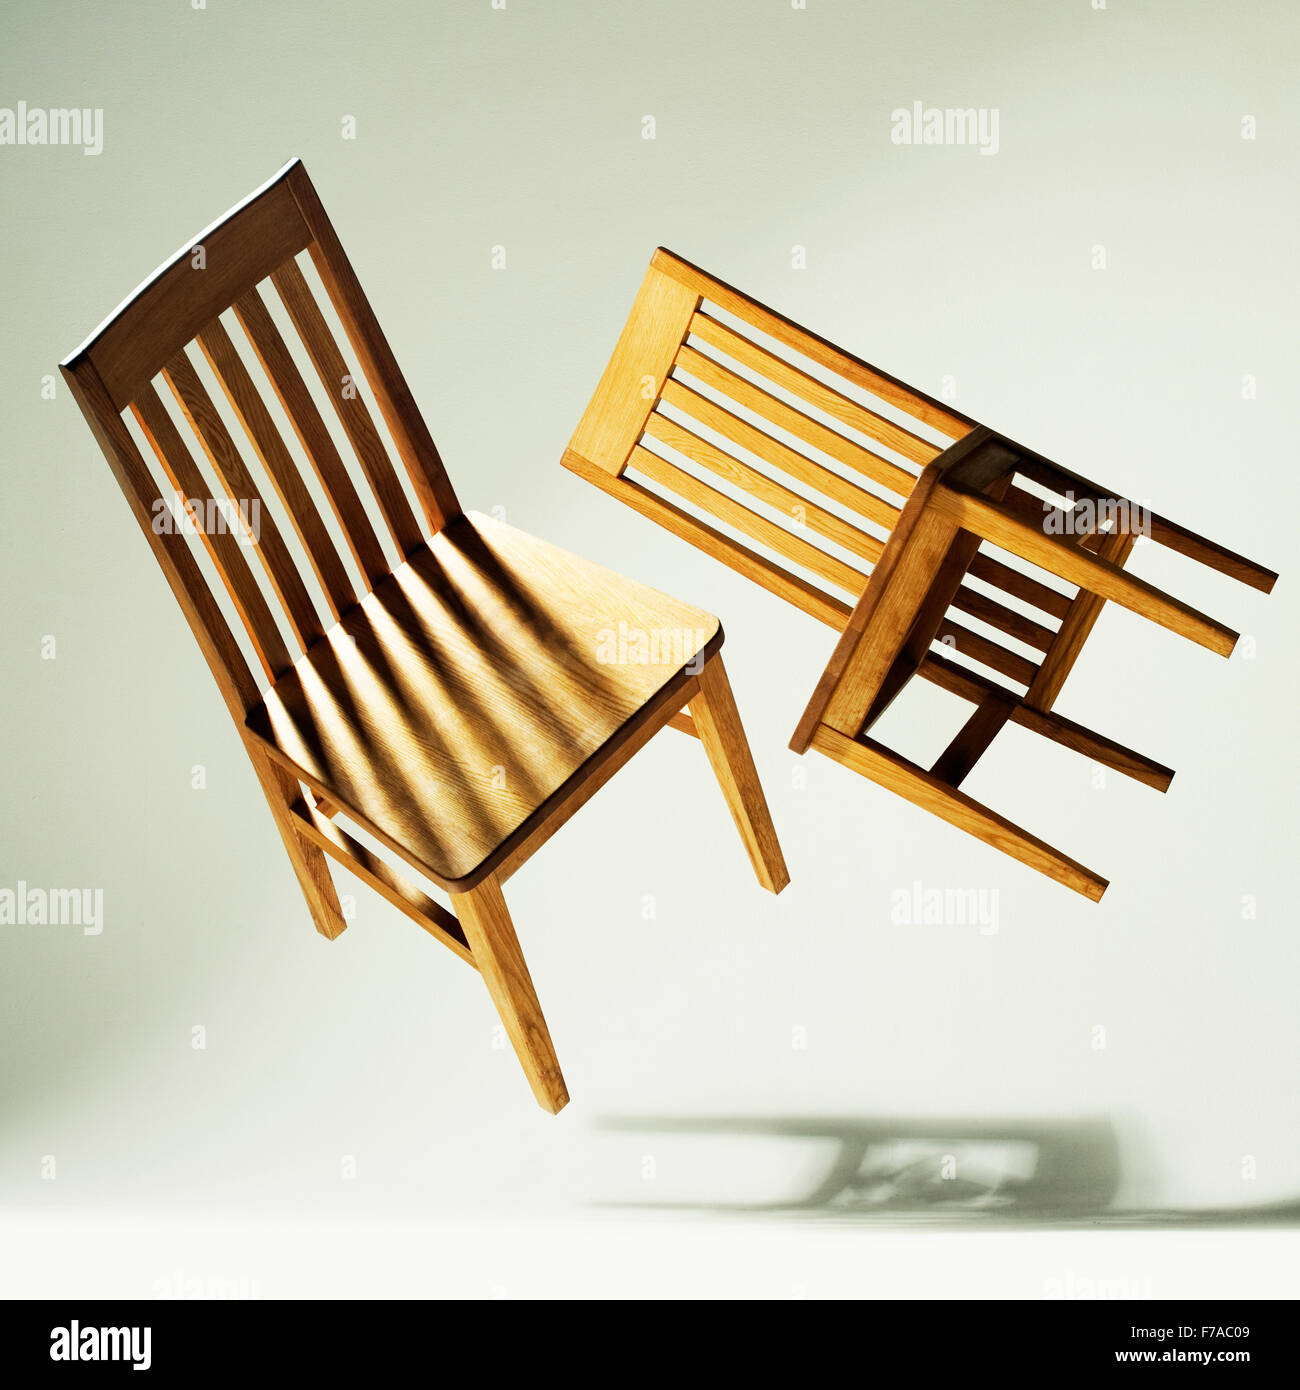 musical chairs, floating,chair,chairs,notes,music,shadows,fun,game,dance,2 chairs - Stock Image